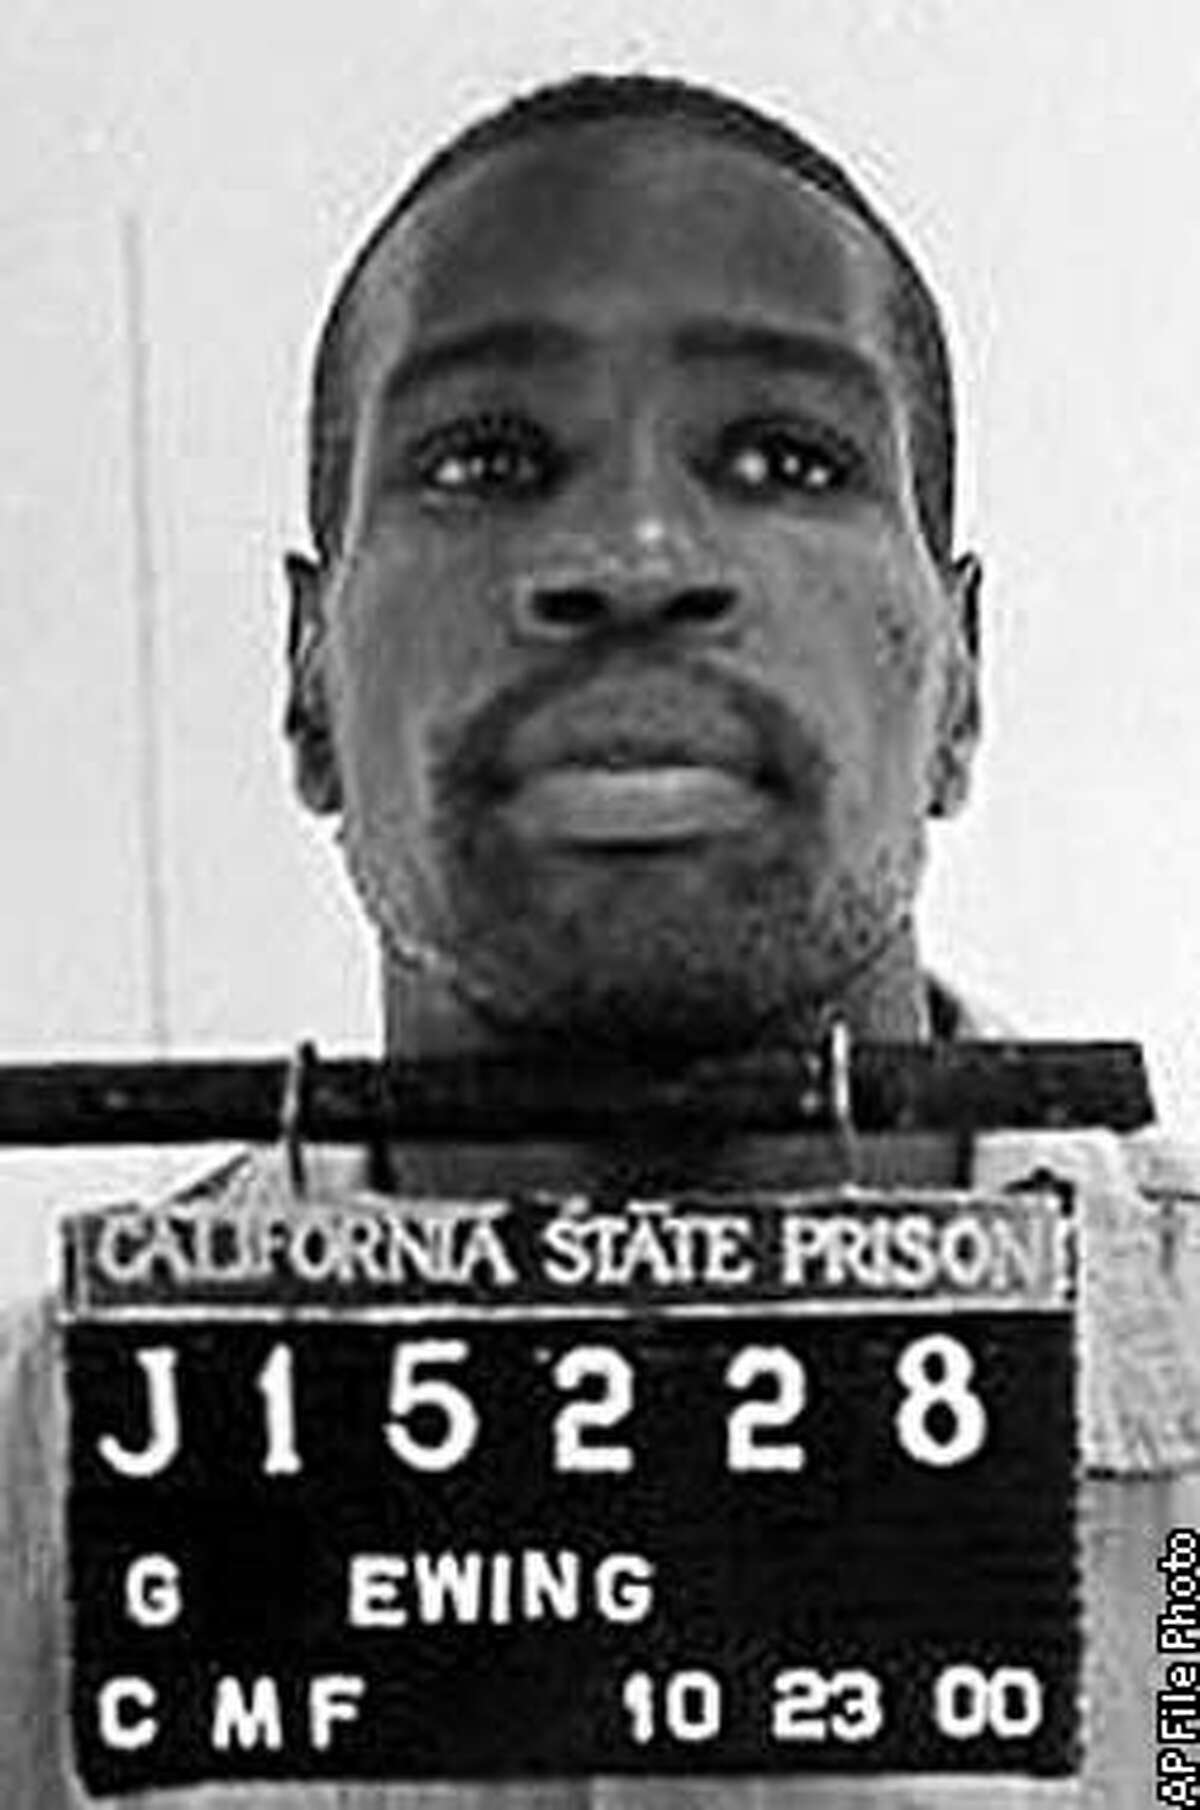 **FILE** This is an undated California Department of Corrections photo of Gary Ewing. The Supreme Court on Wednesday, March 5, 2003, upheld long sentences meted out under the nation's toughest three-time offender law, ruling that a prison term of 25 years to life is not too harsh for Ewing, a small-time thief who shoplifted golf clubs. Ewing is serving the sentence after stuffing three golf clubs down his pants at a golf course in 2000. (AP Photo/Calif. Department of Corrections)